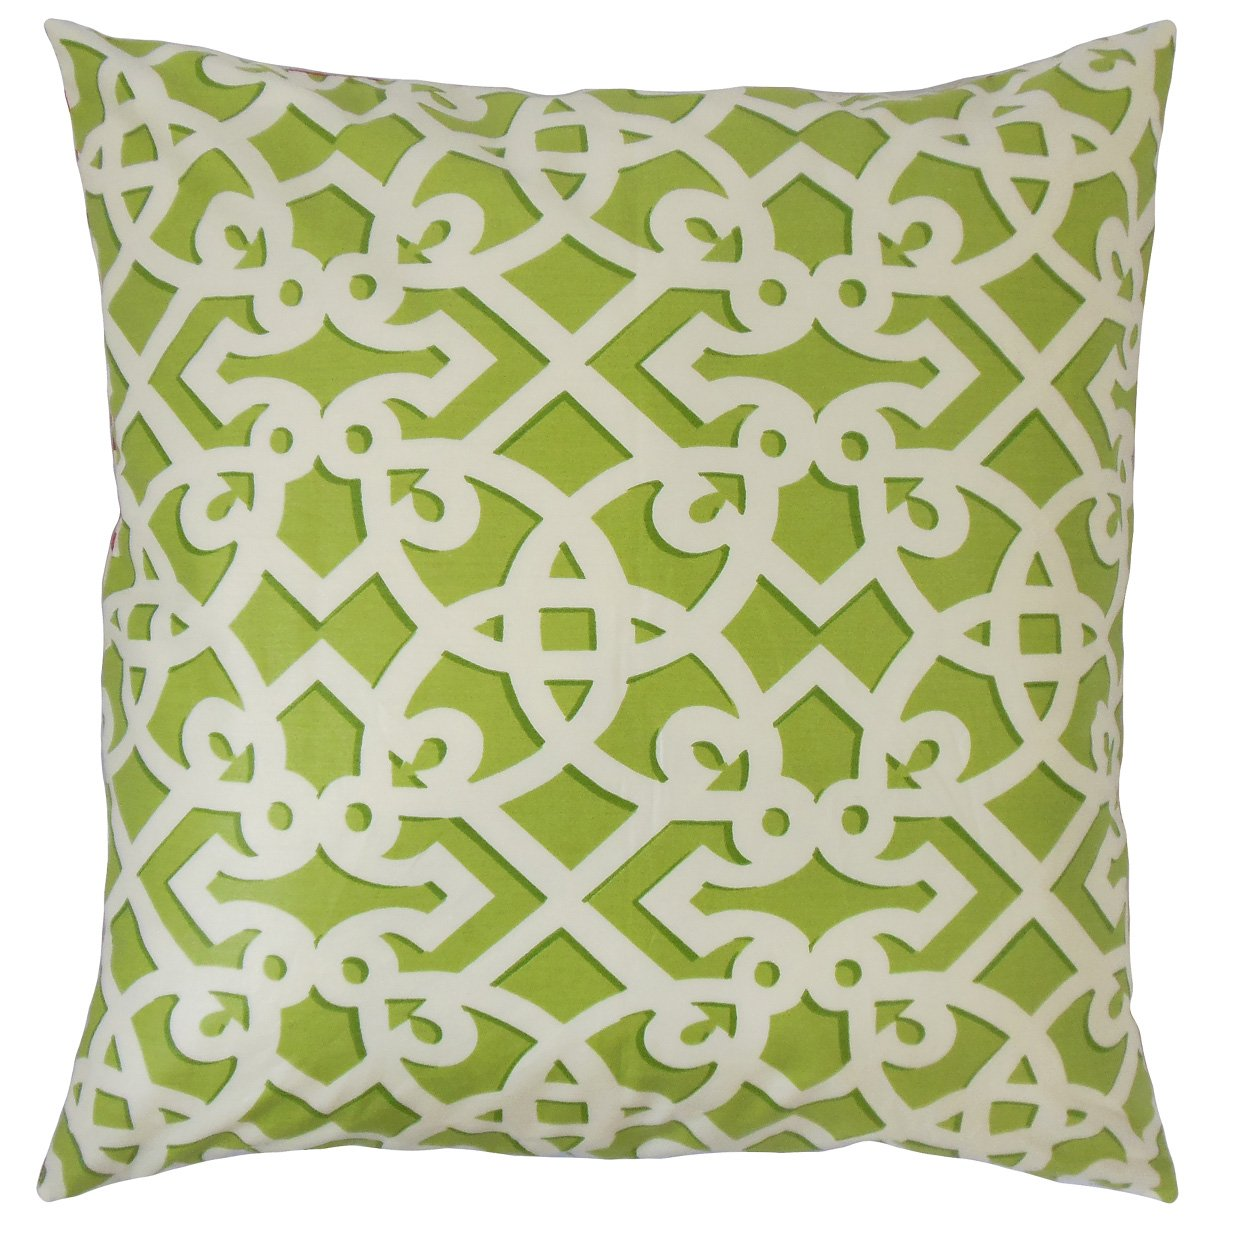 The Pillow Collection P18-WAV-750484-FRANCISFRET-SPRING-C100 Valerian Geometric Pillow Spring